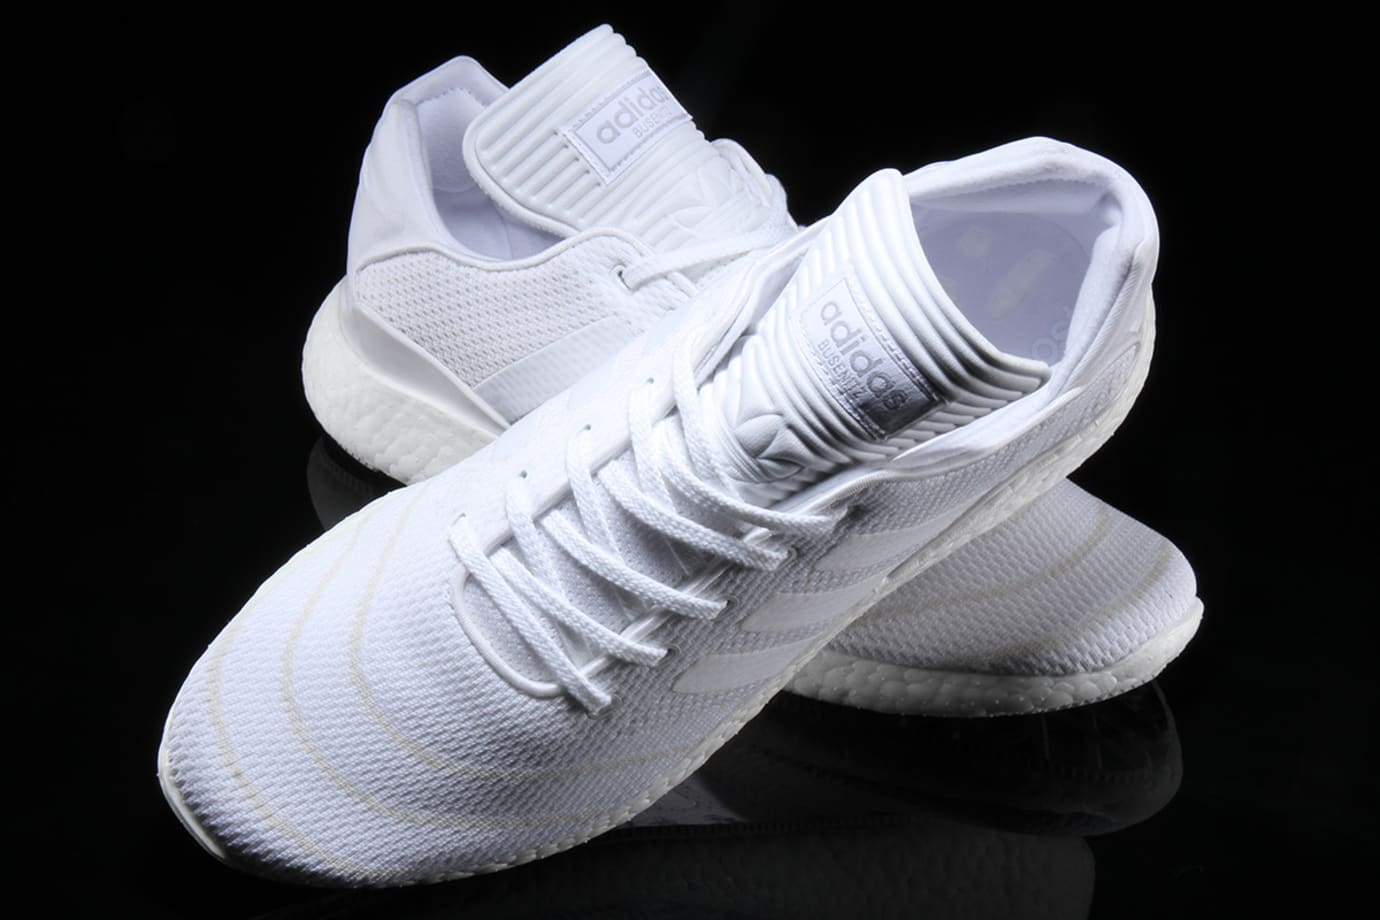 sneakers for cheap 84730 bead2 Image via Premier · Adidas Busenitz Pure Boost Triple White